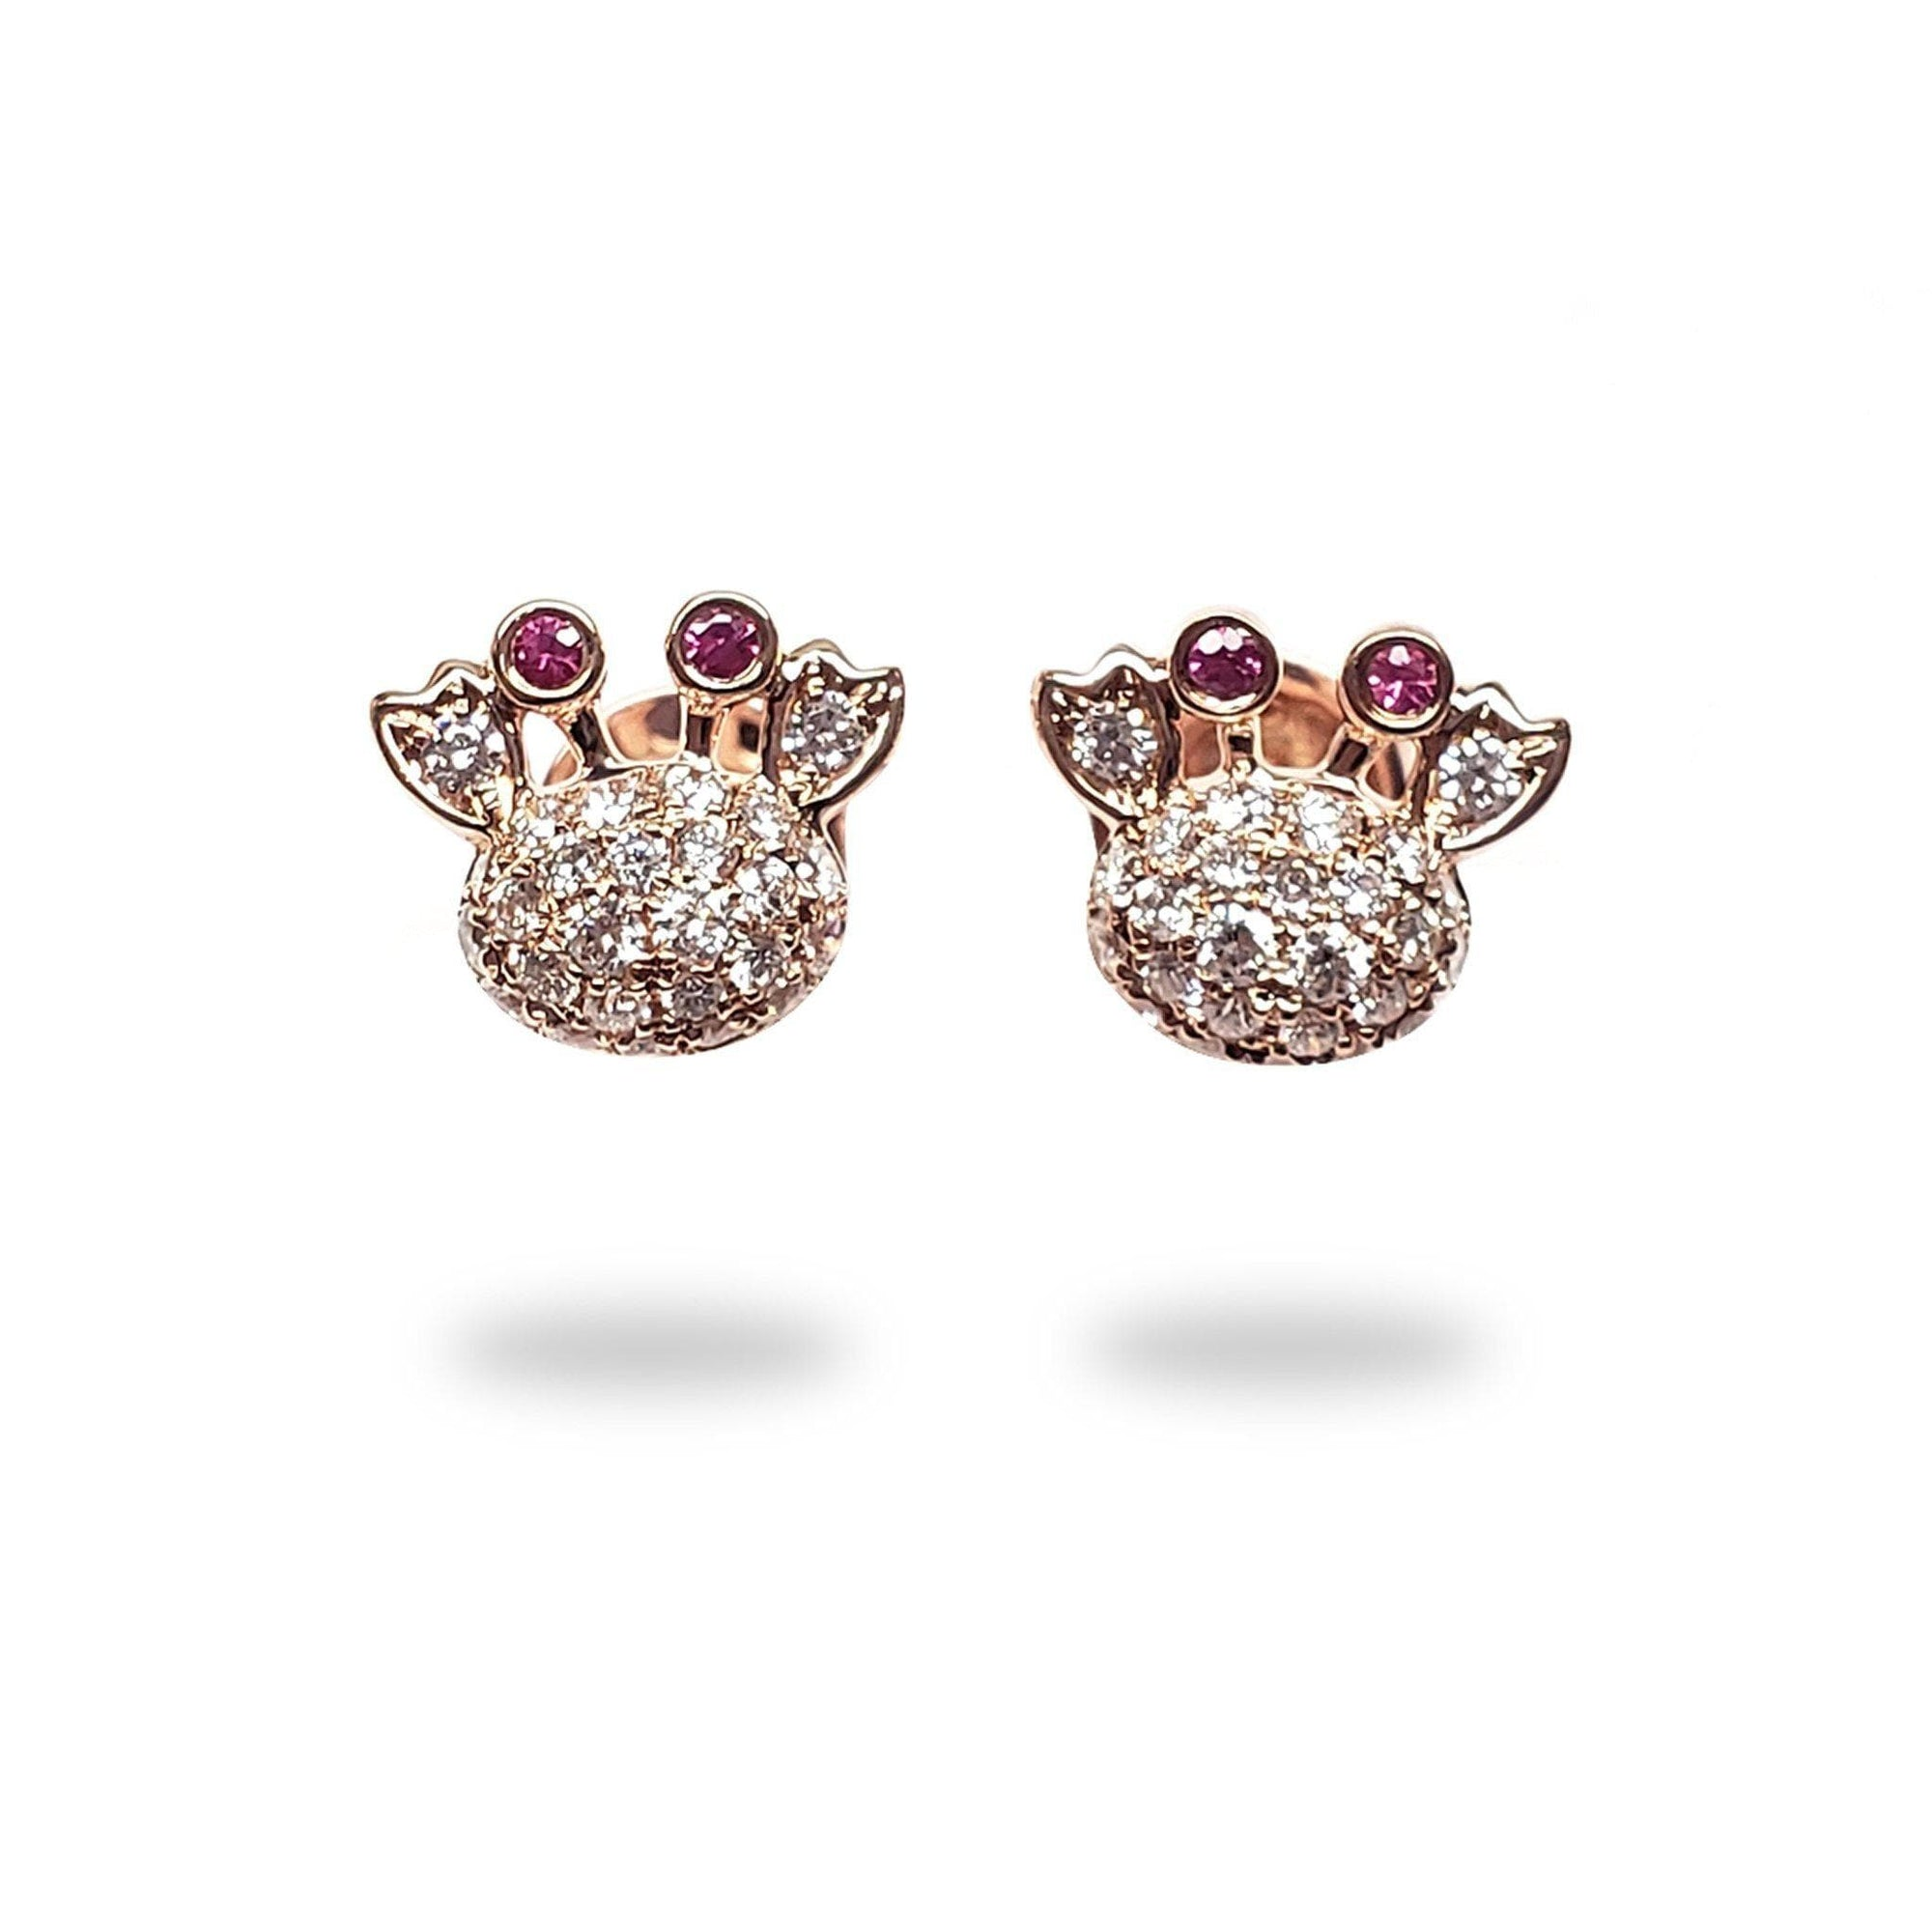 Crab Pink Sapphire Earrings with Diamonds in 14K Rose Gold - Maui Divers Jewelry